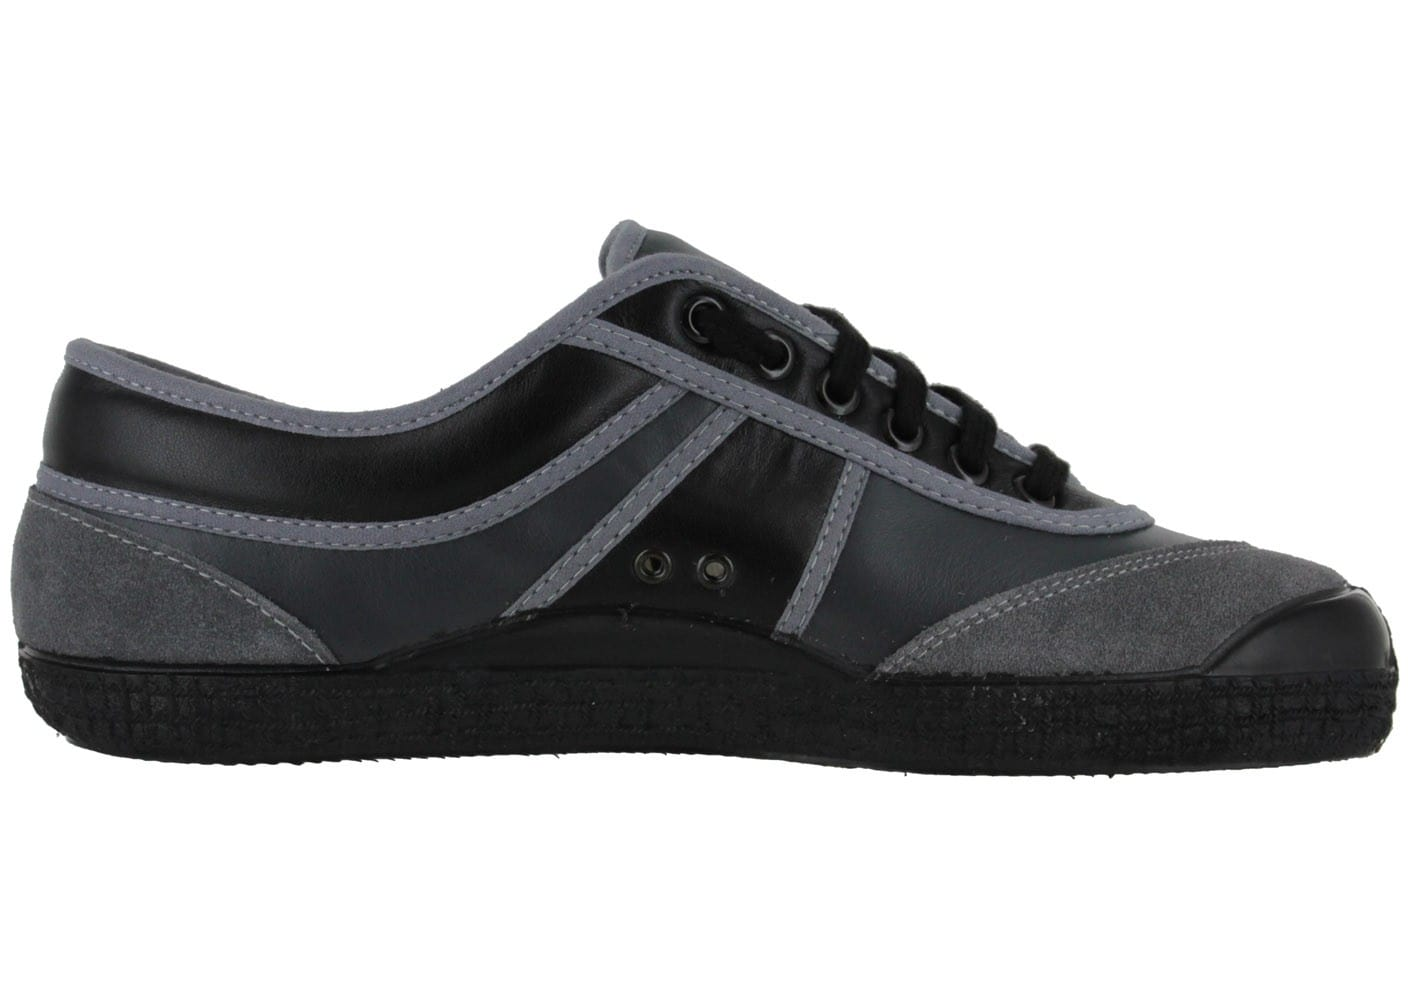 kawasaki hot shot leather gris chaussures homme chausport. Black Bedroom Furniture Sets. Home Design Ideas